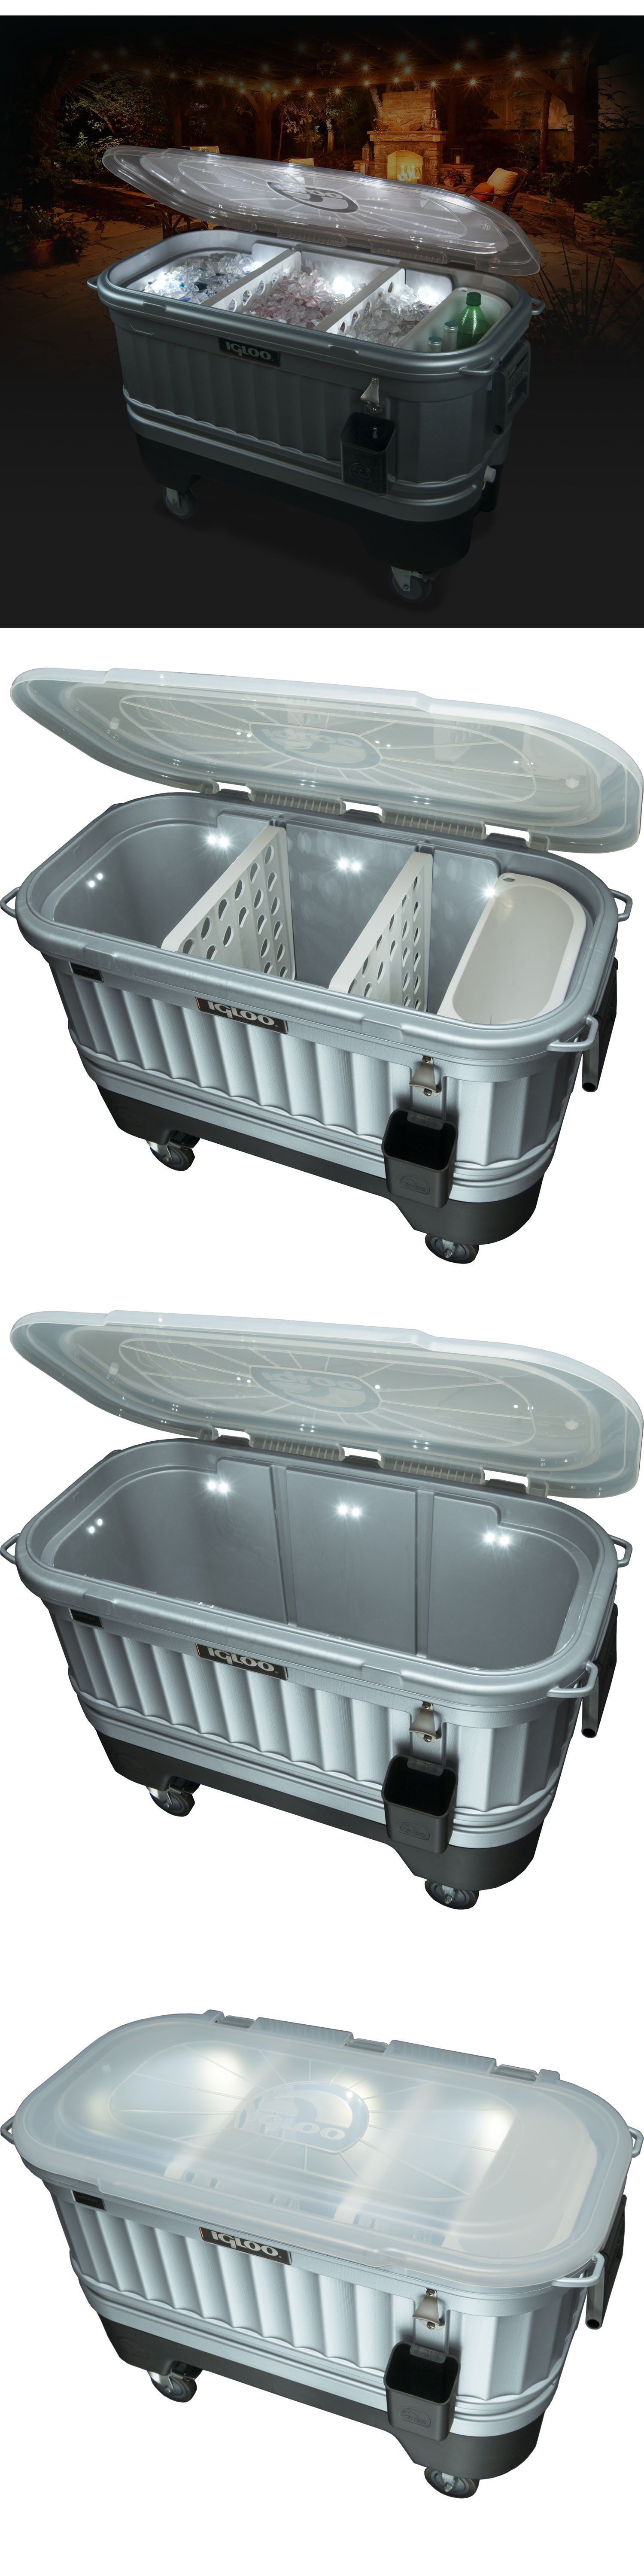 Ice Chests And Coolers 79691: Portable Cooler With Wheels Patio Ice Chest  Beverage Outdoor Powered